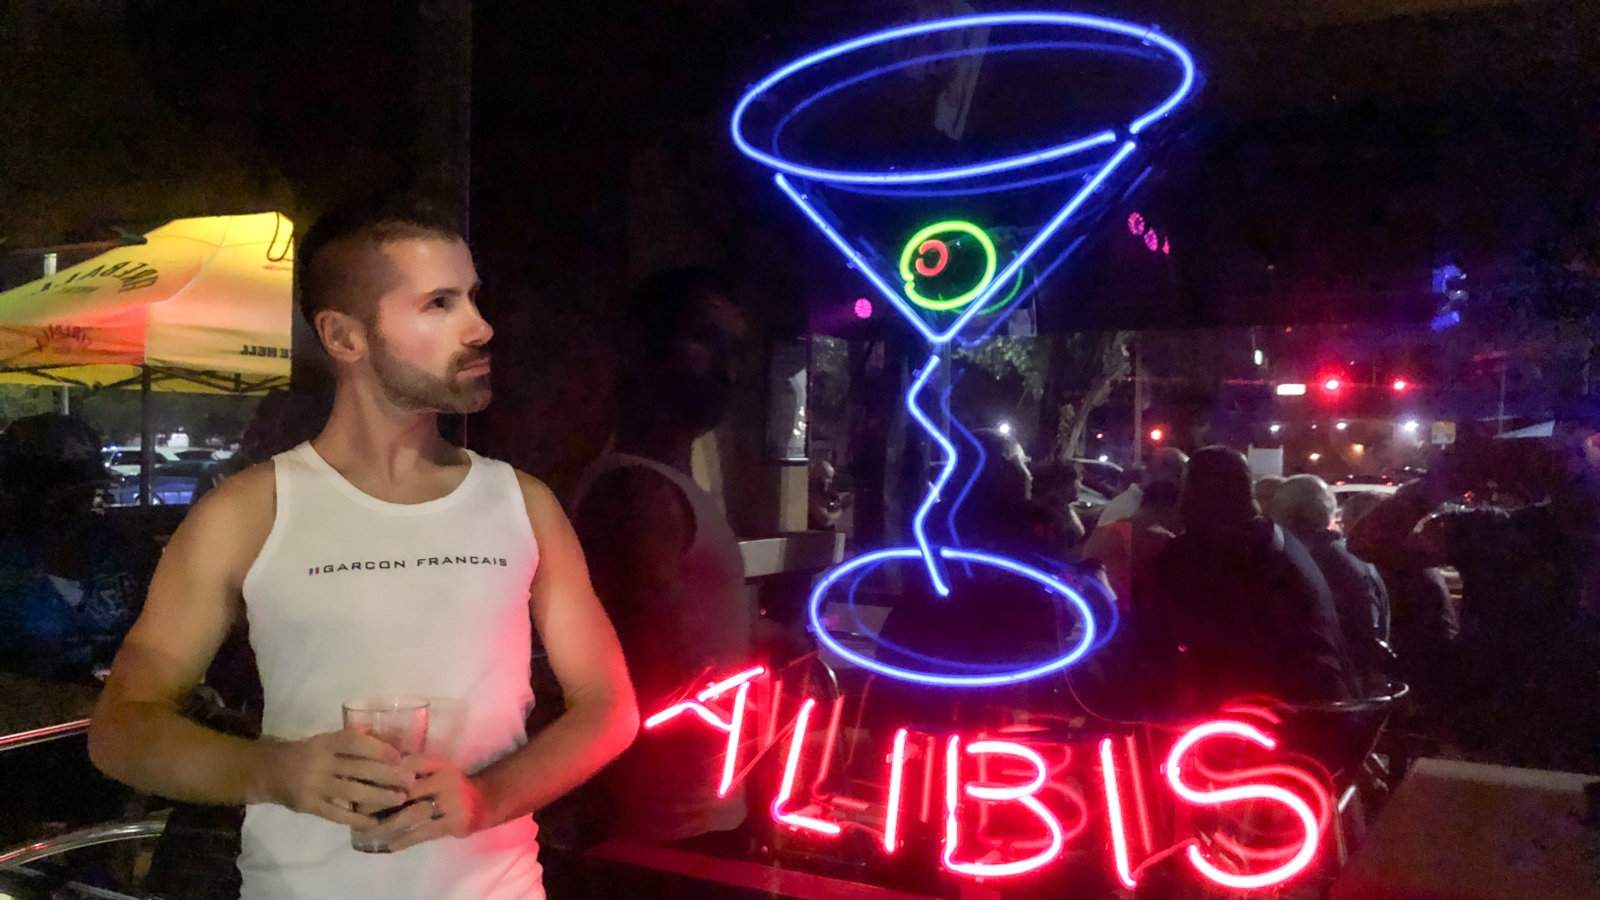 O Álibi Monkey Bar da Georgie é o maior e possivelmente mais famoso bar gay de Fort Lauderdale